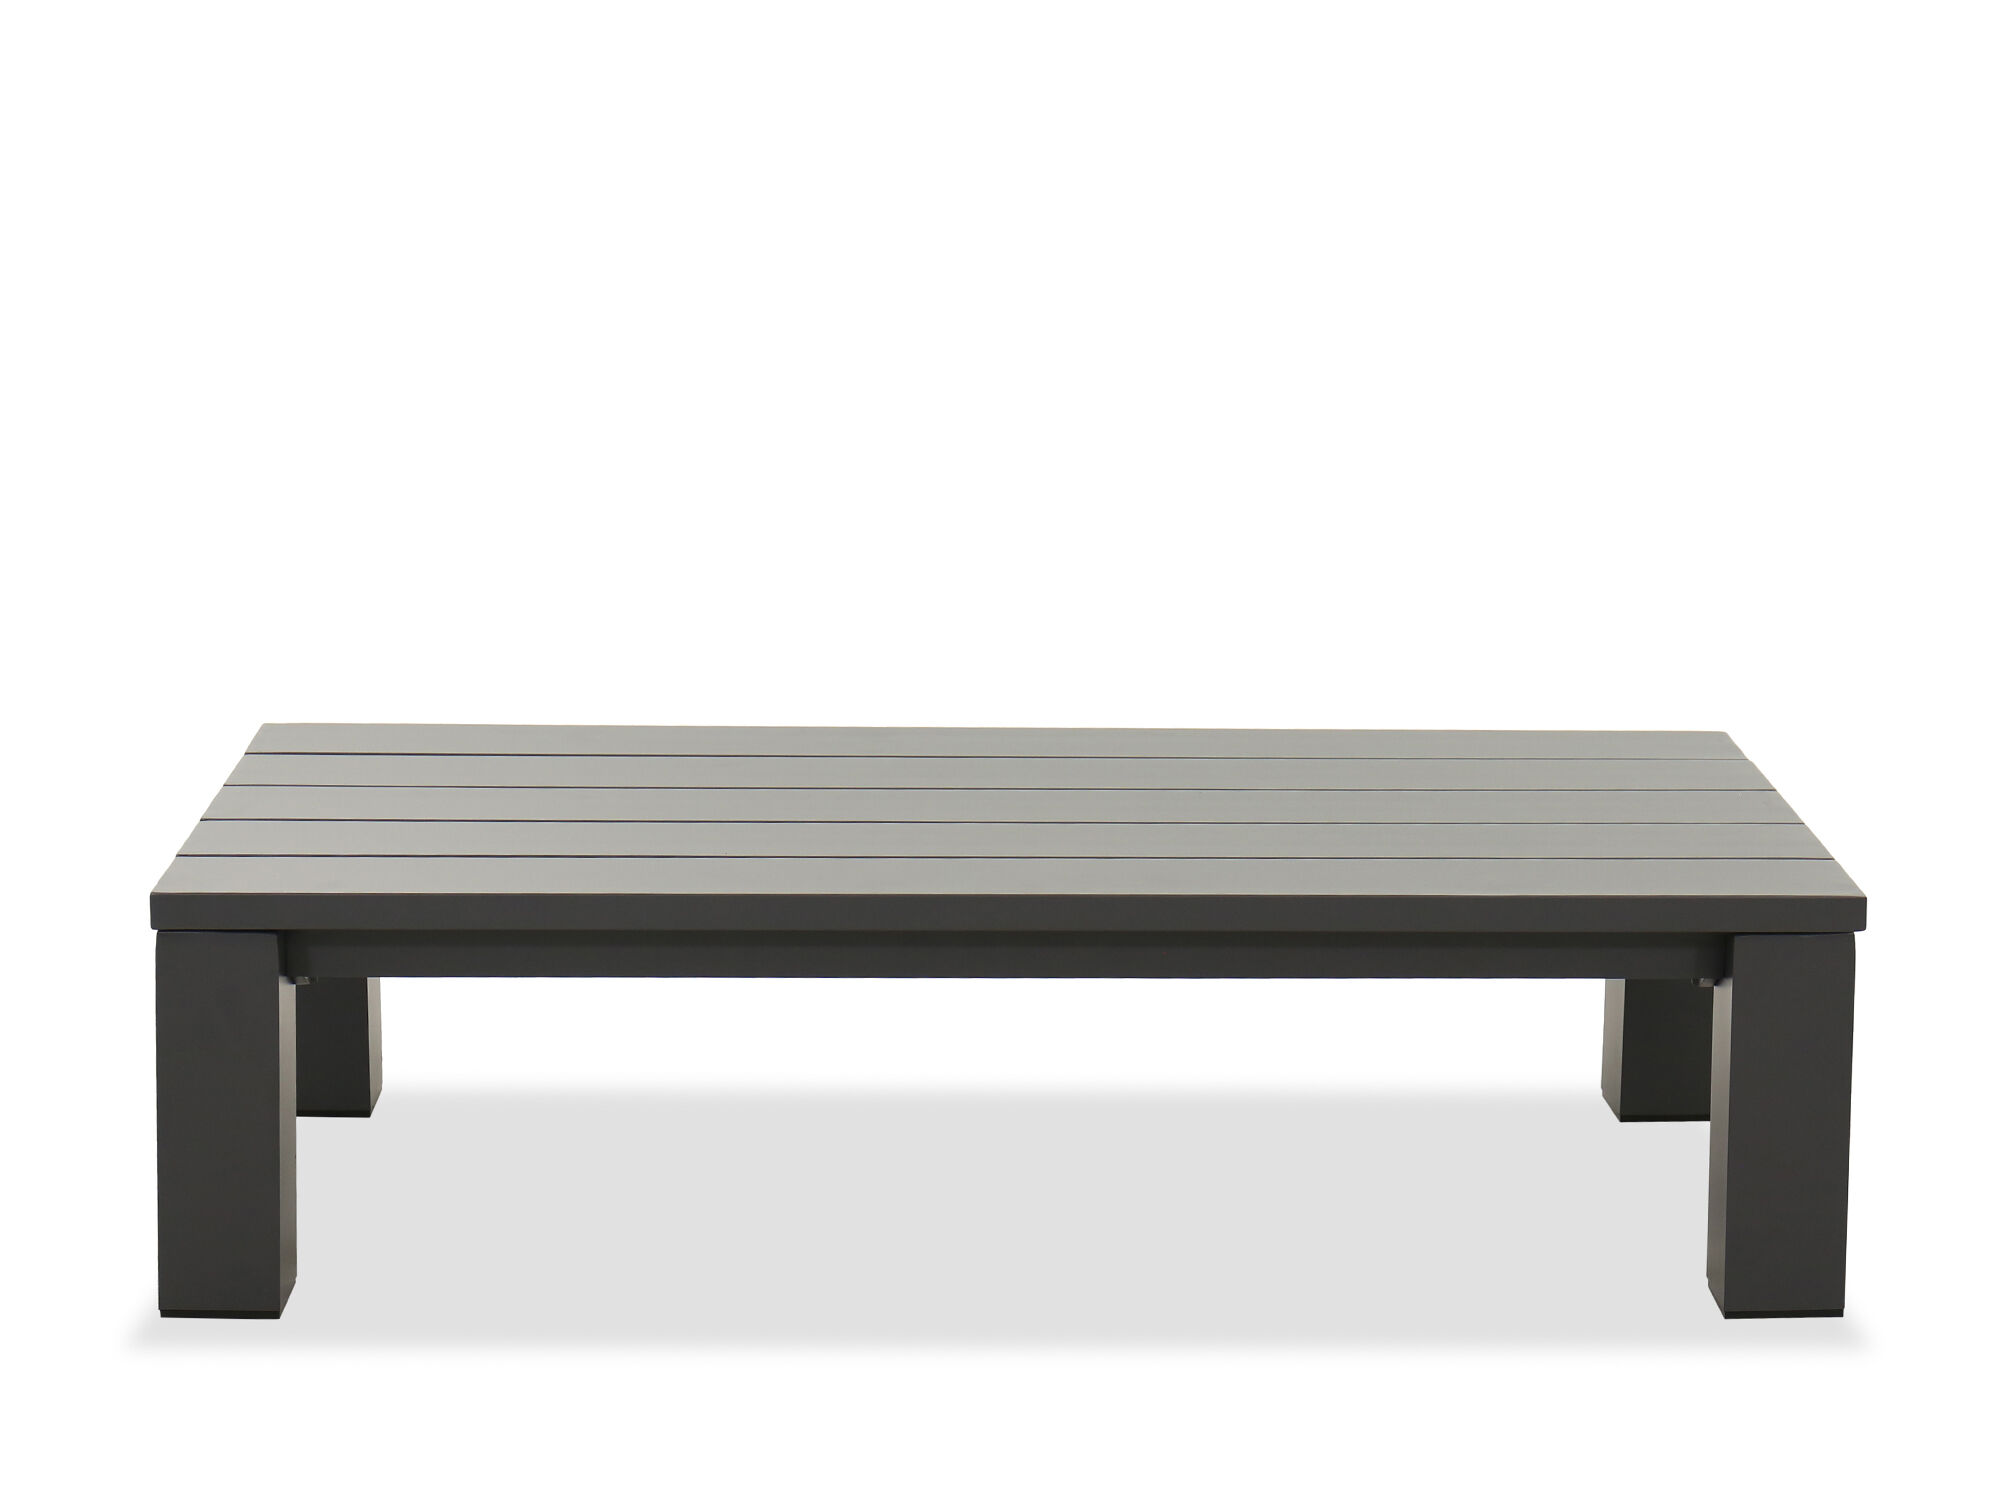 Aluminum Patio Coffee Table In Gray Mathis Brothers Furniture